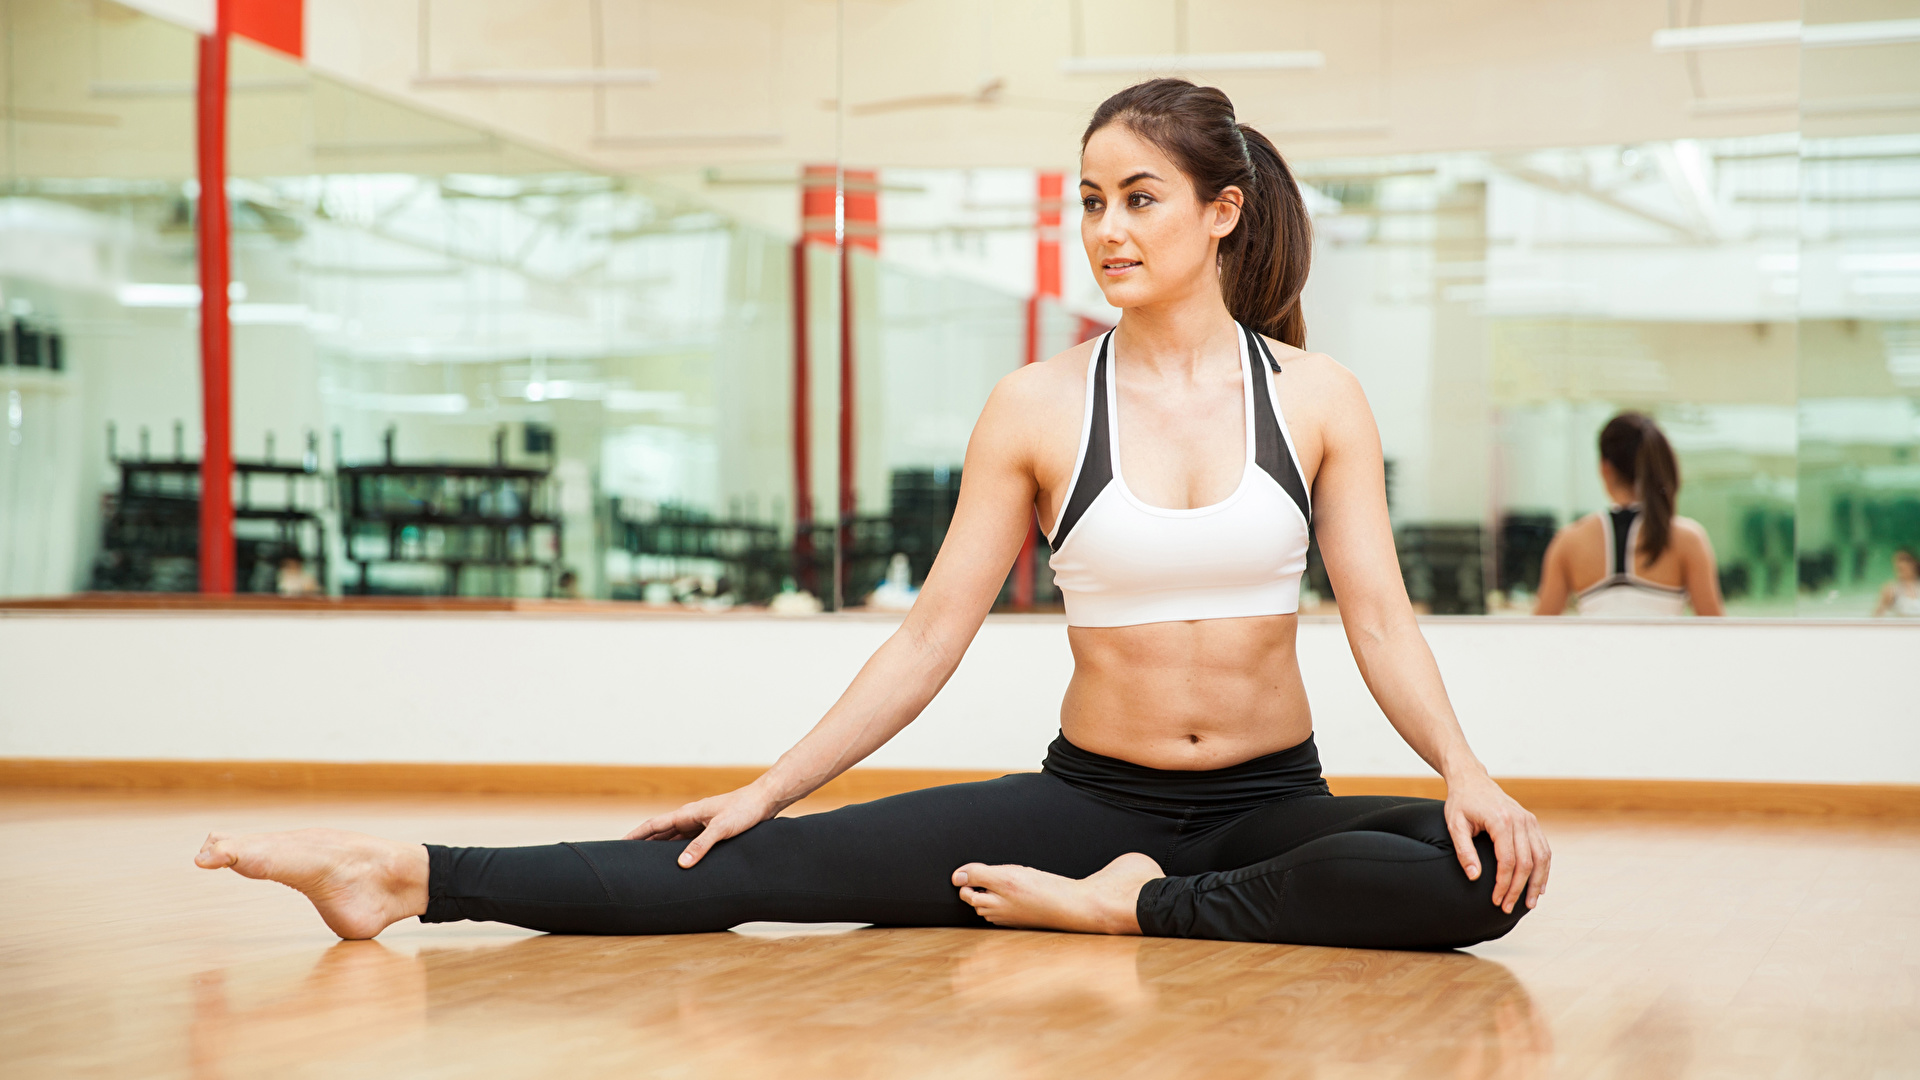 Top 10 Women's Health and Fitness Blogs